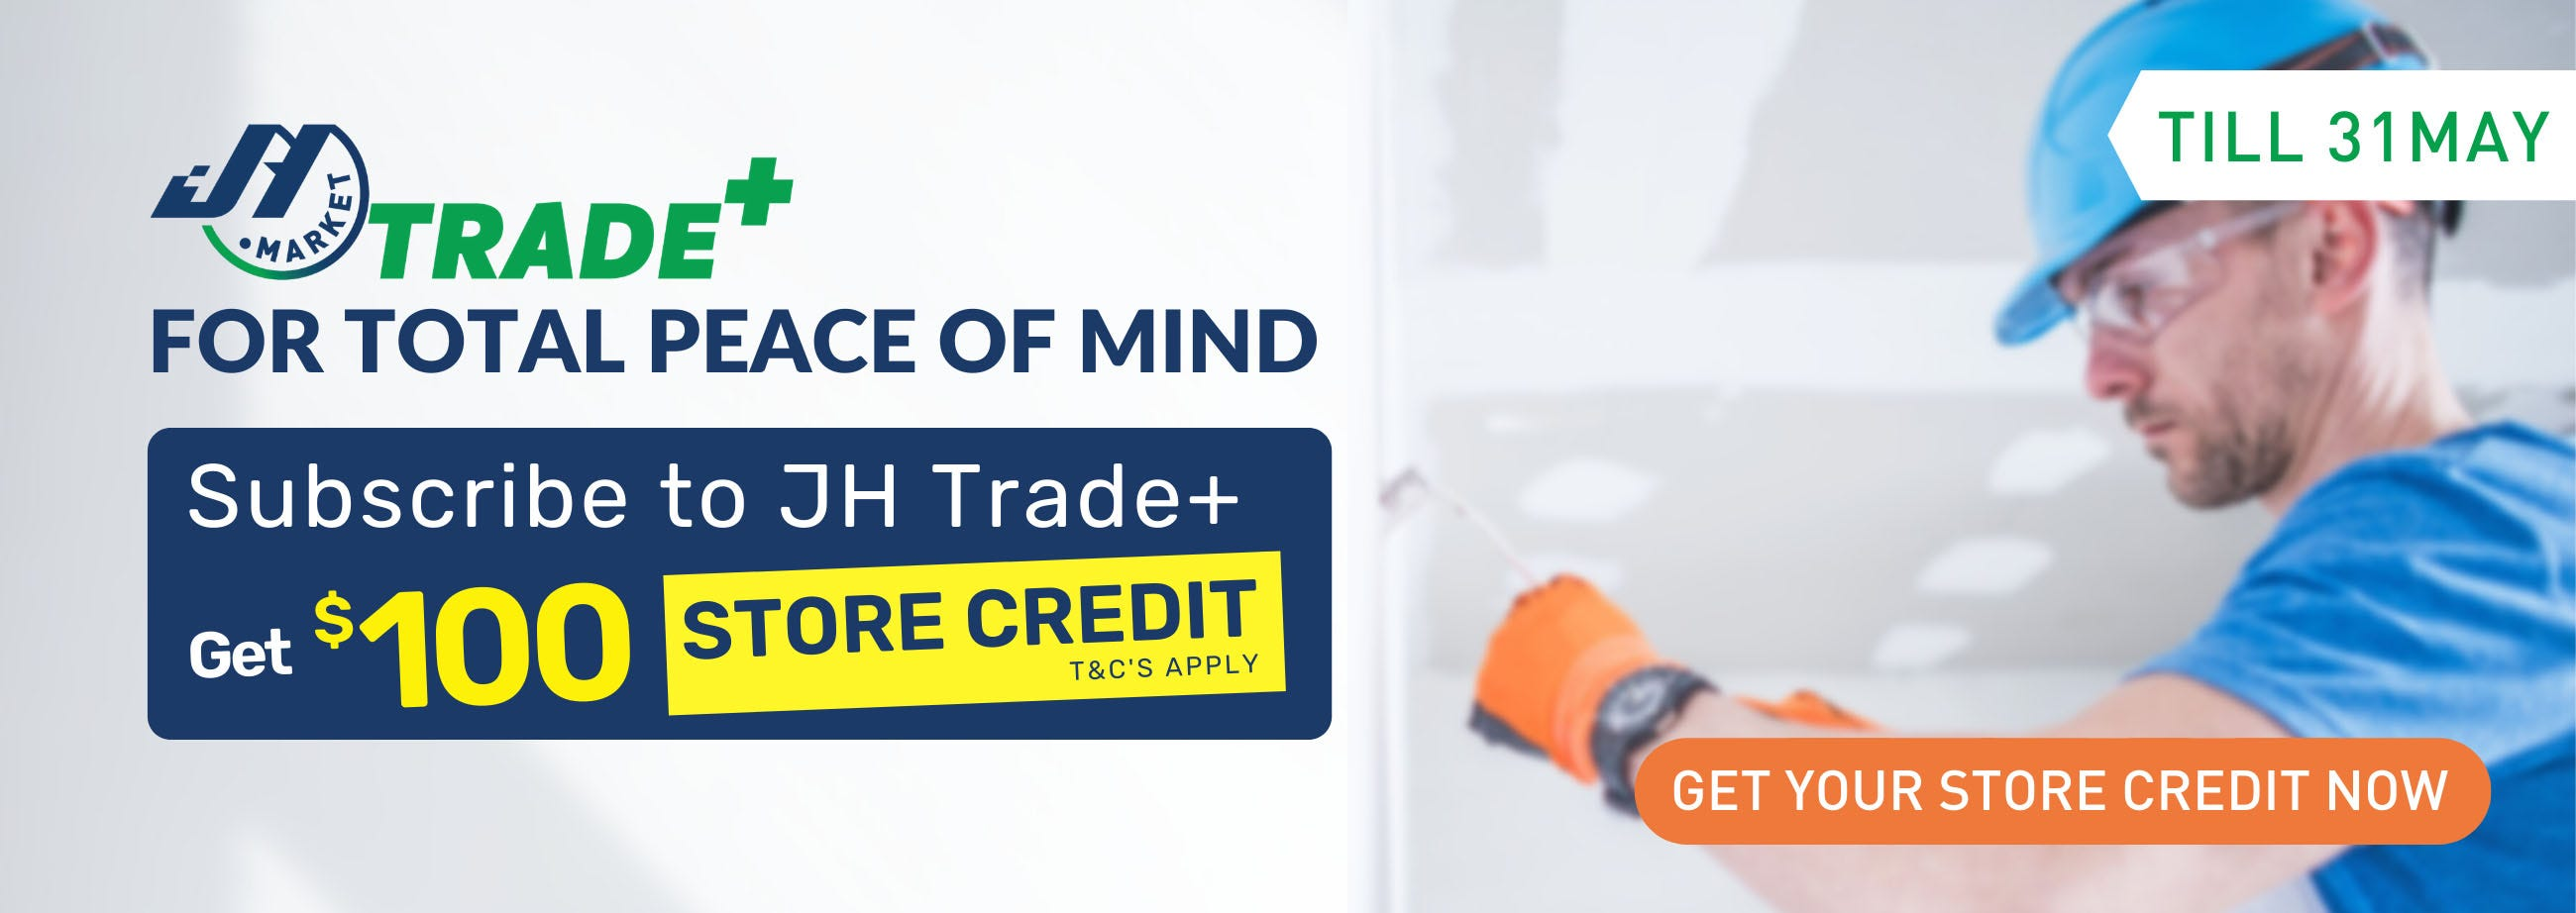 trade plus offer 6th May